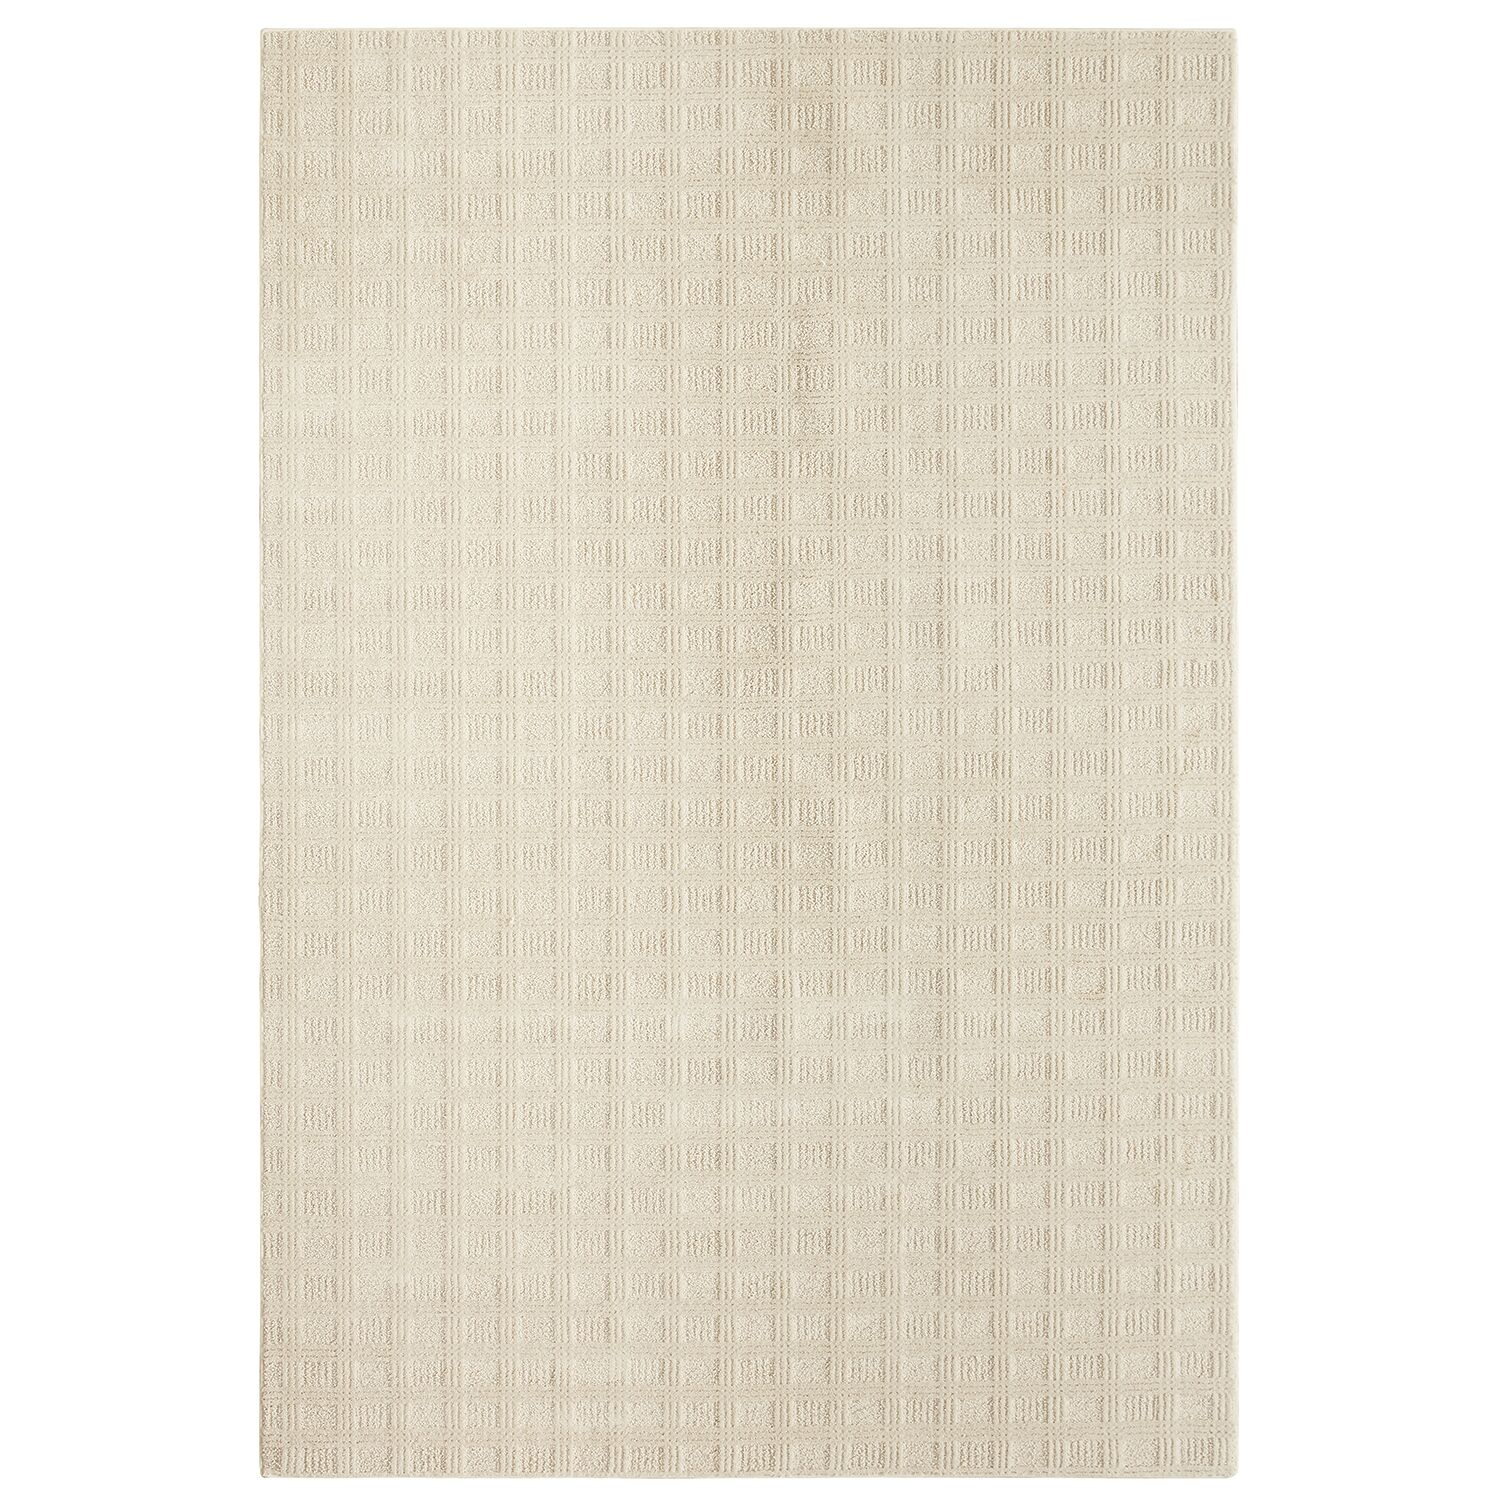 Bettie Hand-Tufted Ivory Area Rug Rug Size: Rectangle 9' x 12'